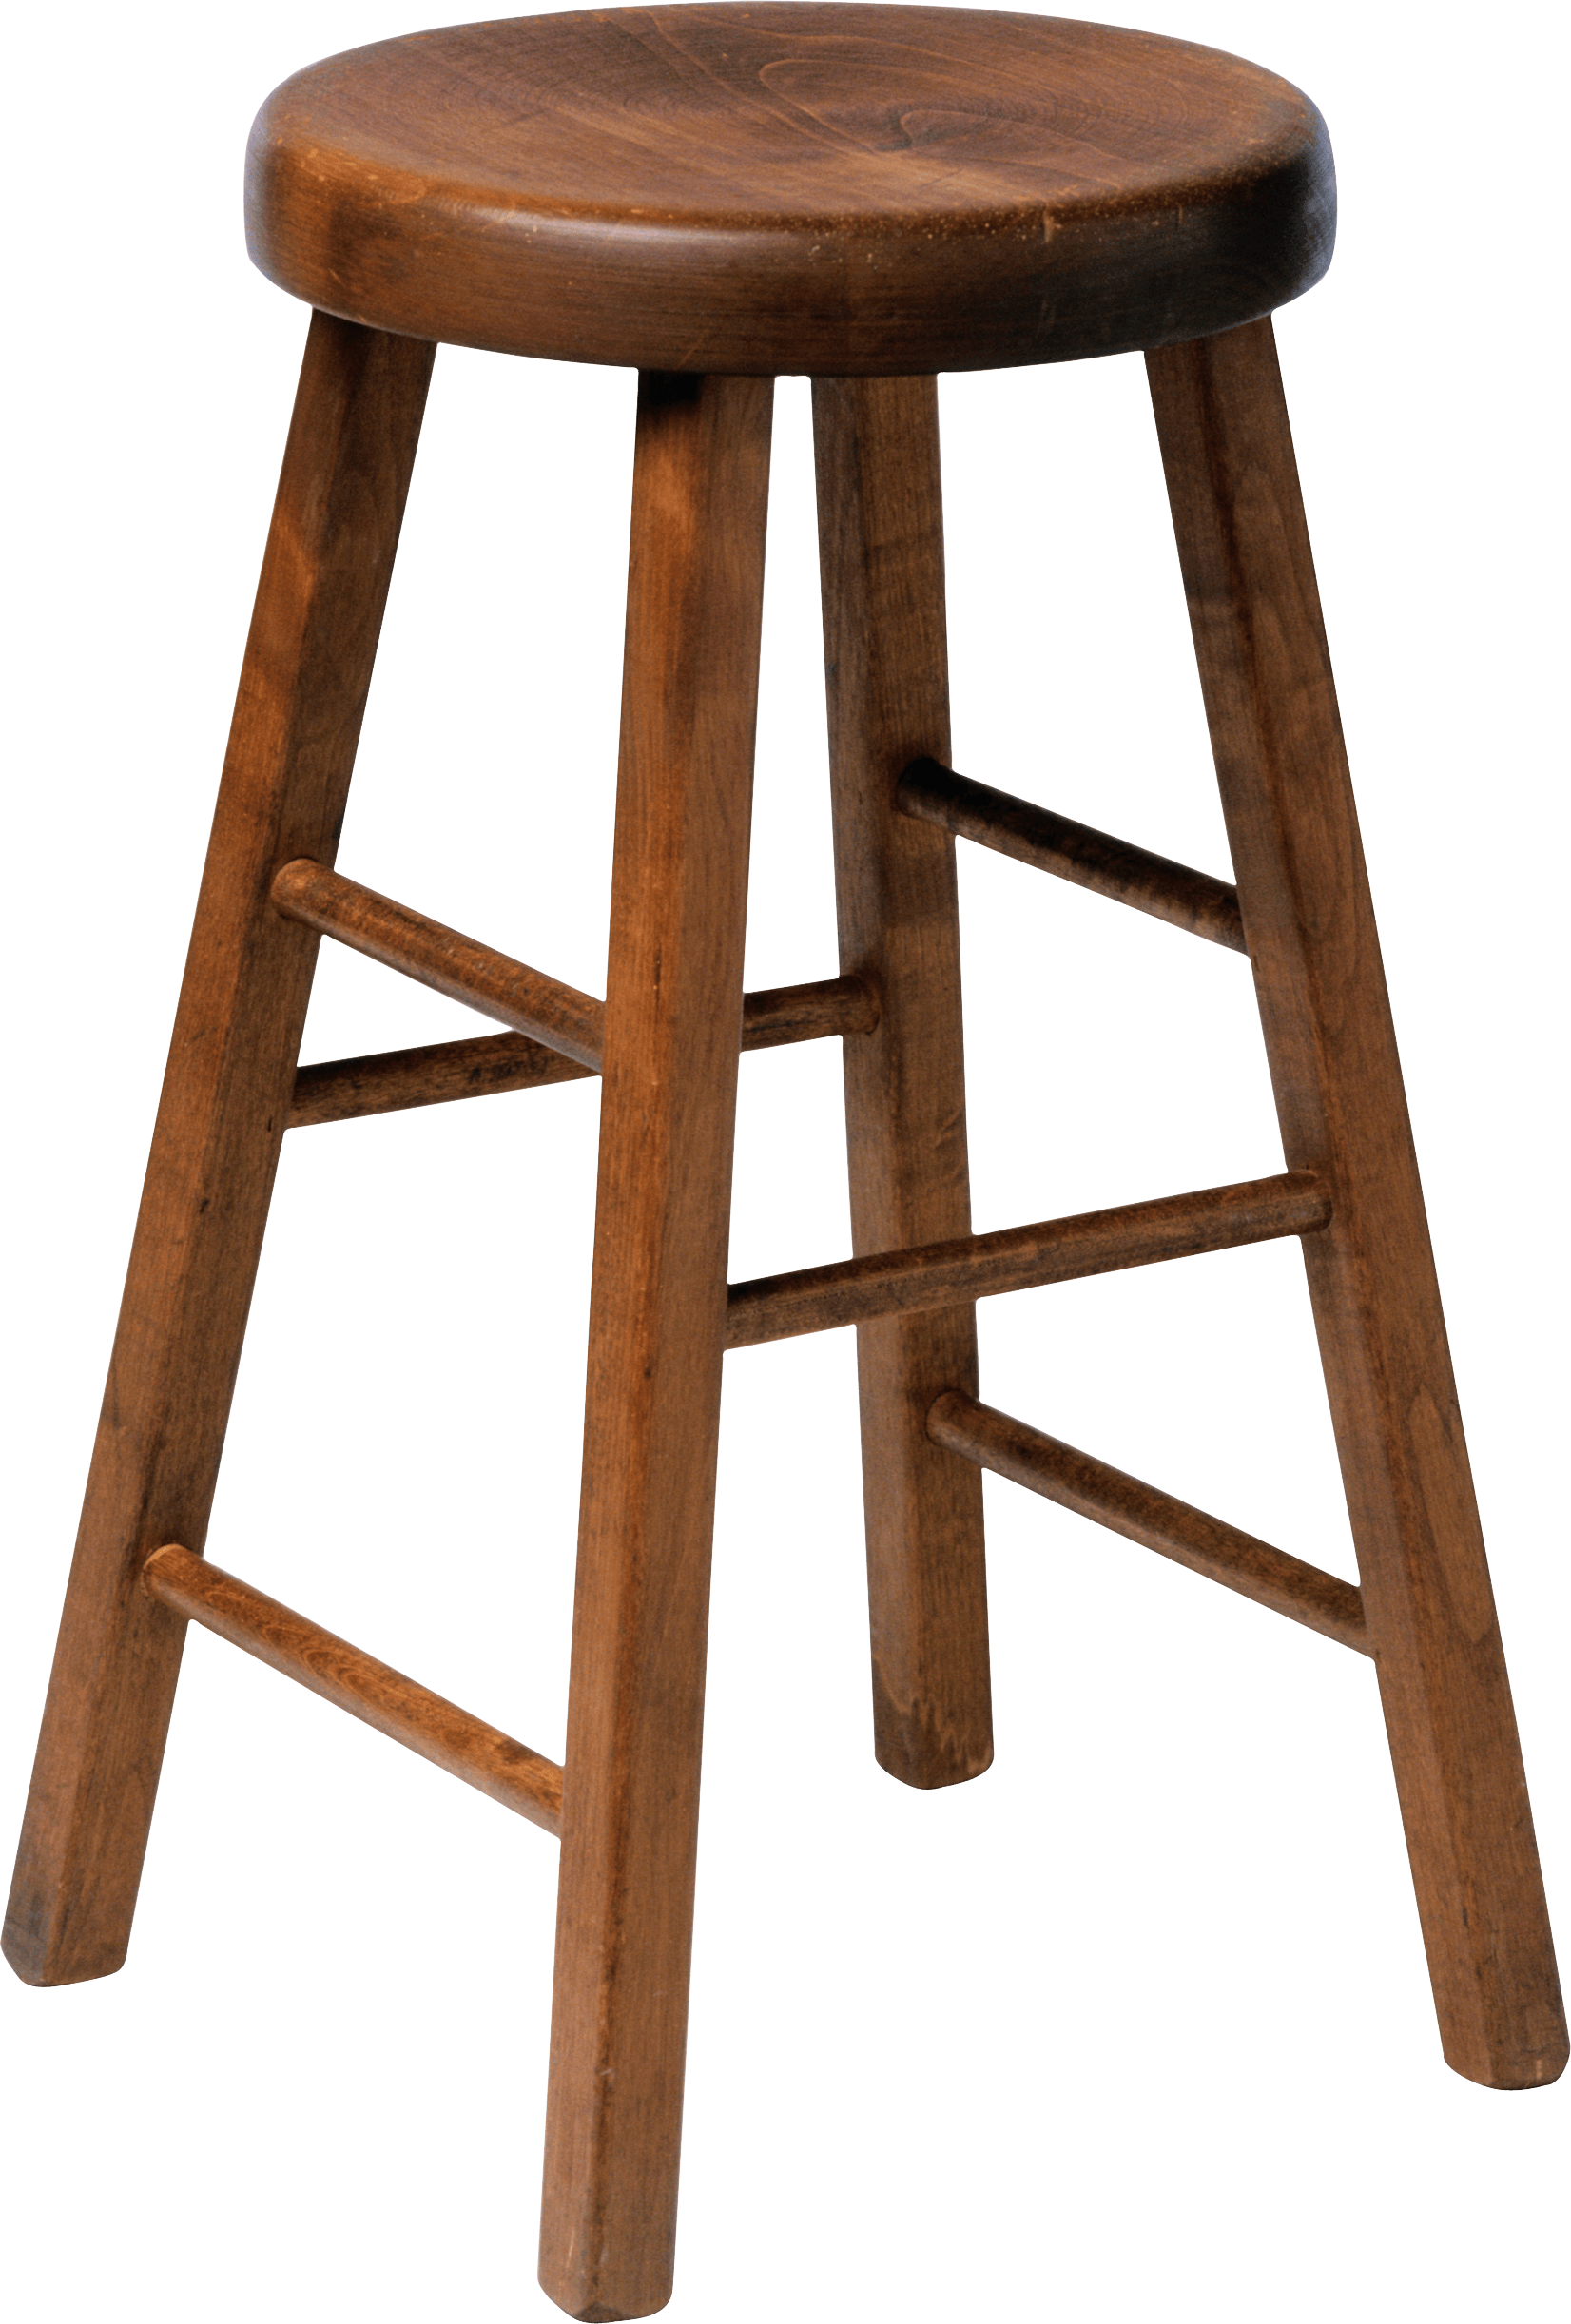 Chair PNG - 3218